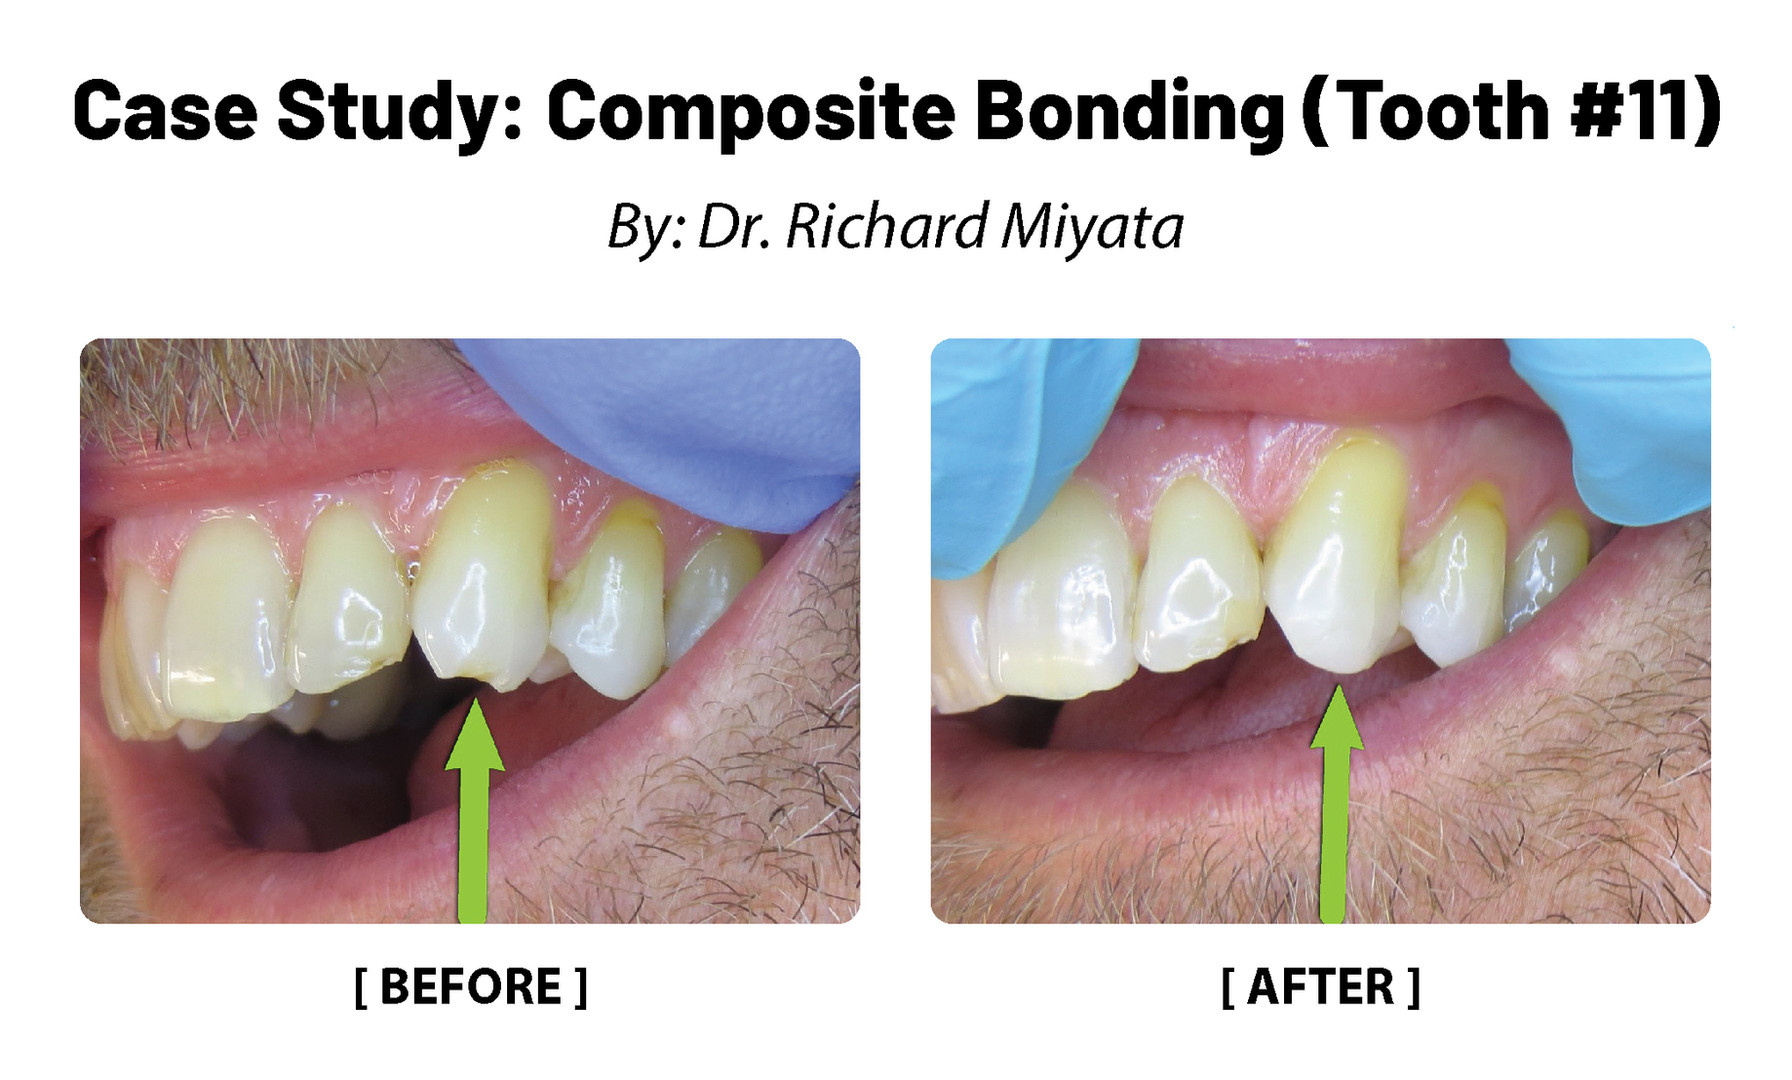 Case Study: Composite Bonding (Tooth 11)